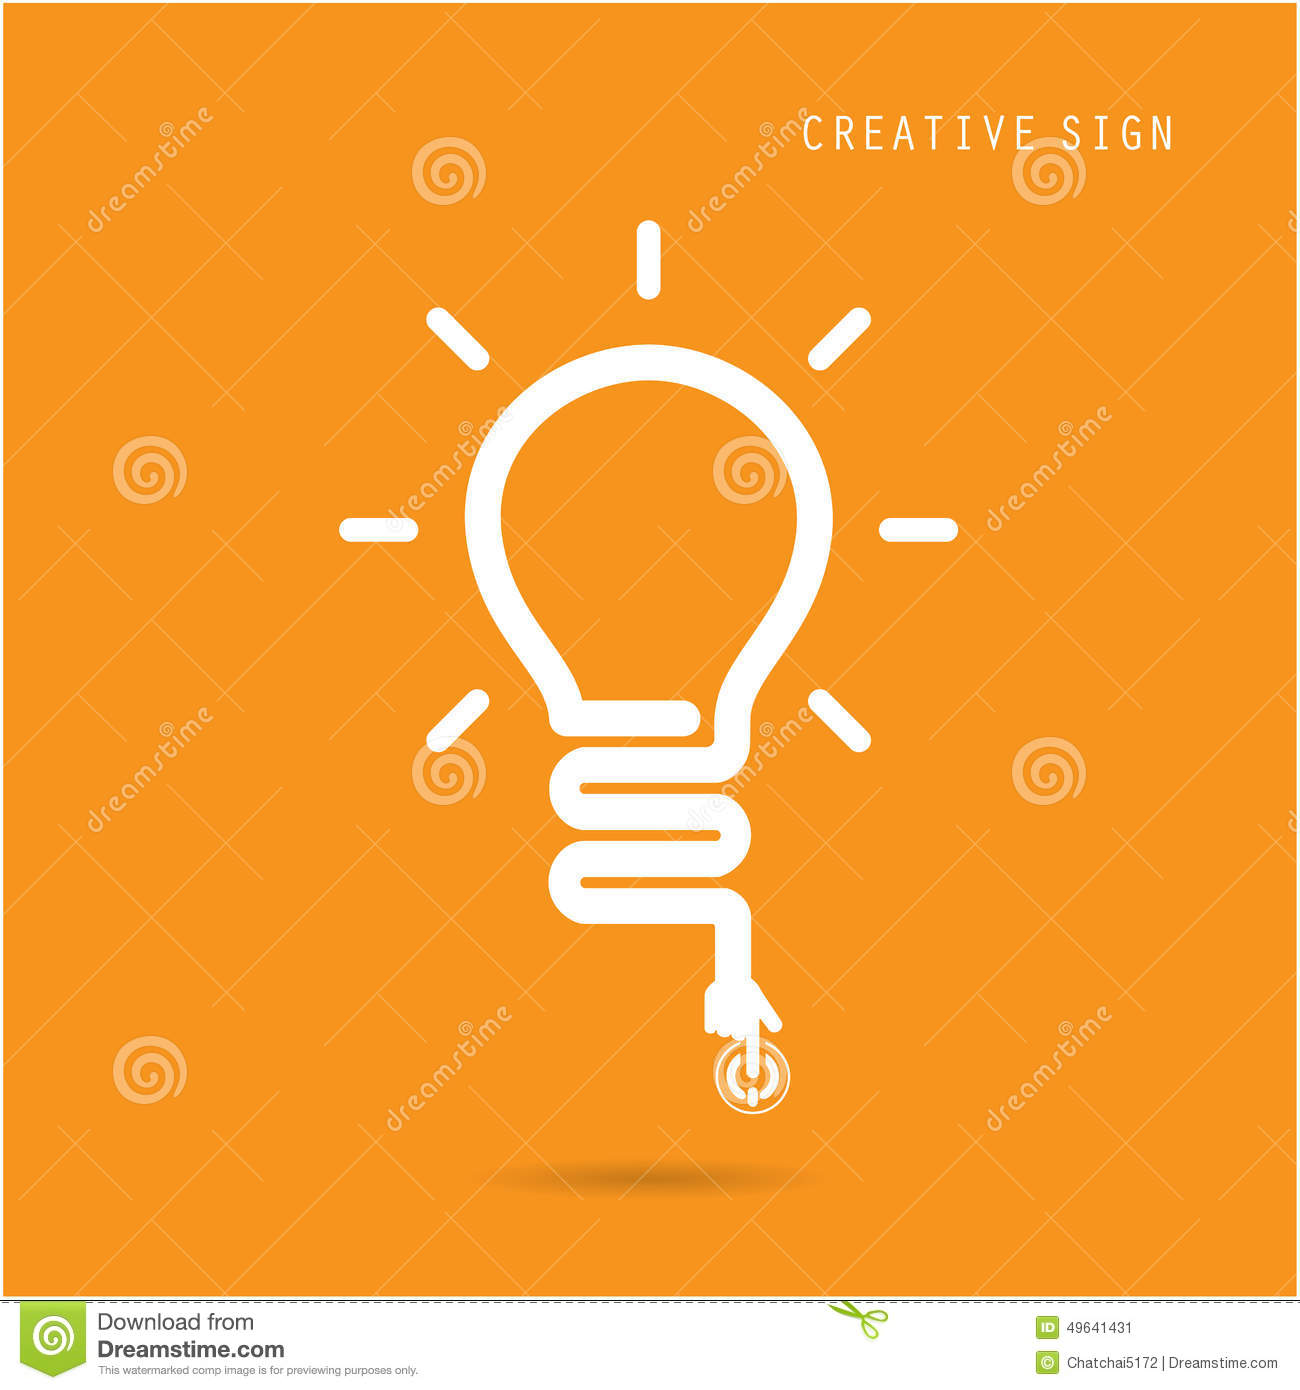 Creative Light Bulb Concept, Design For Poster Flyer Cover ...